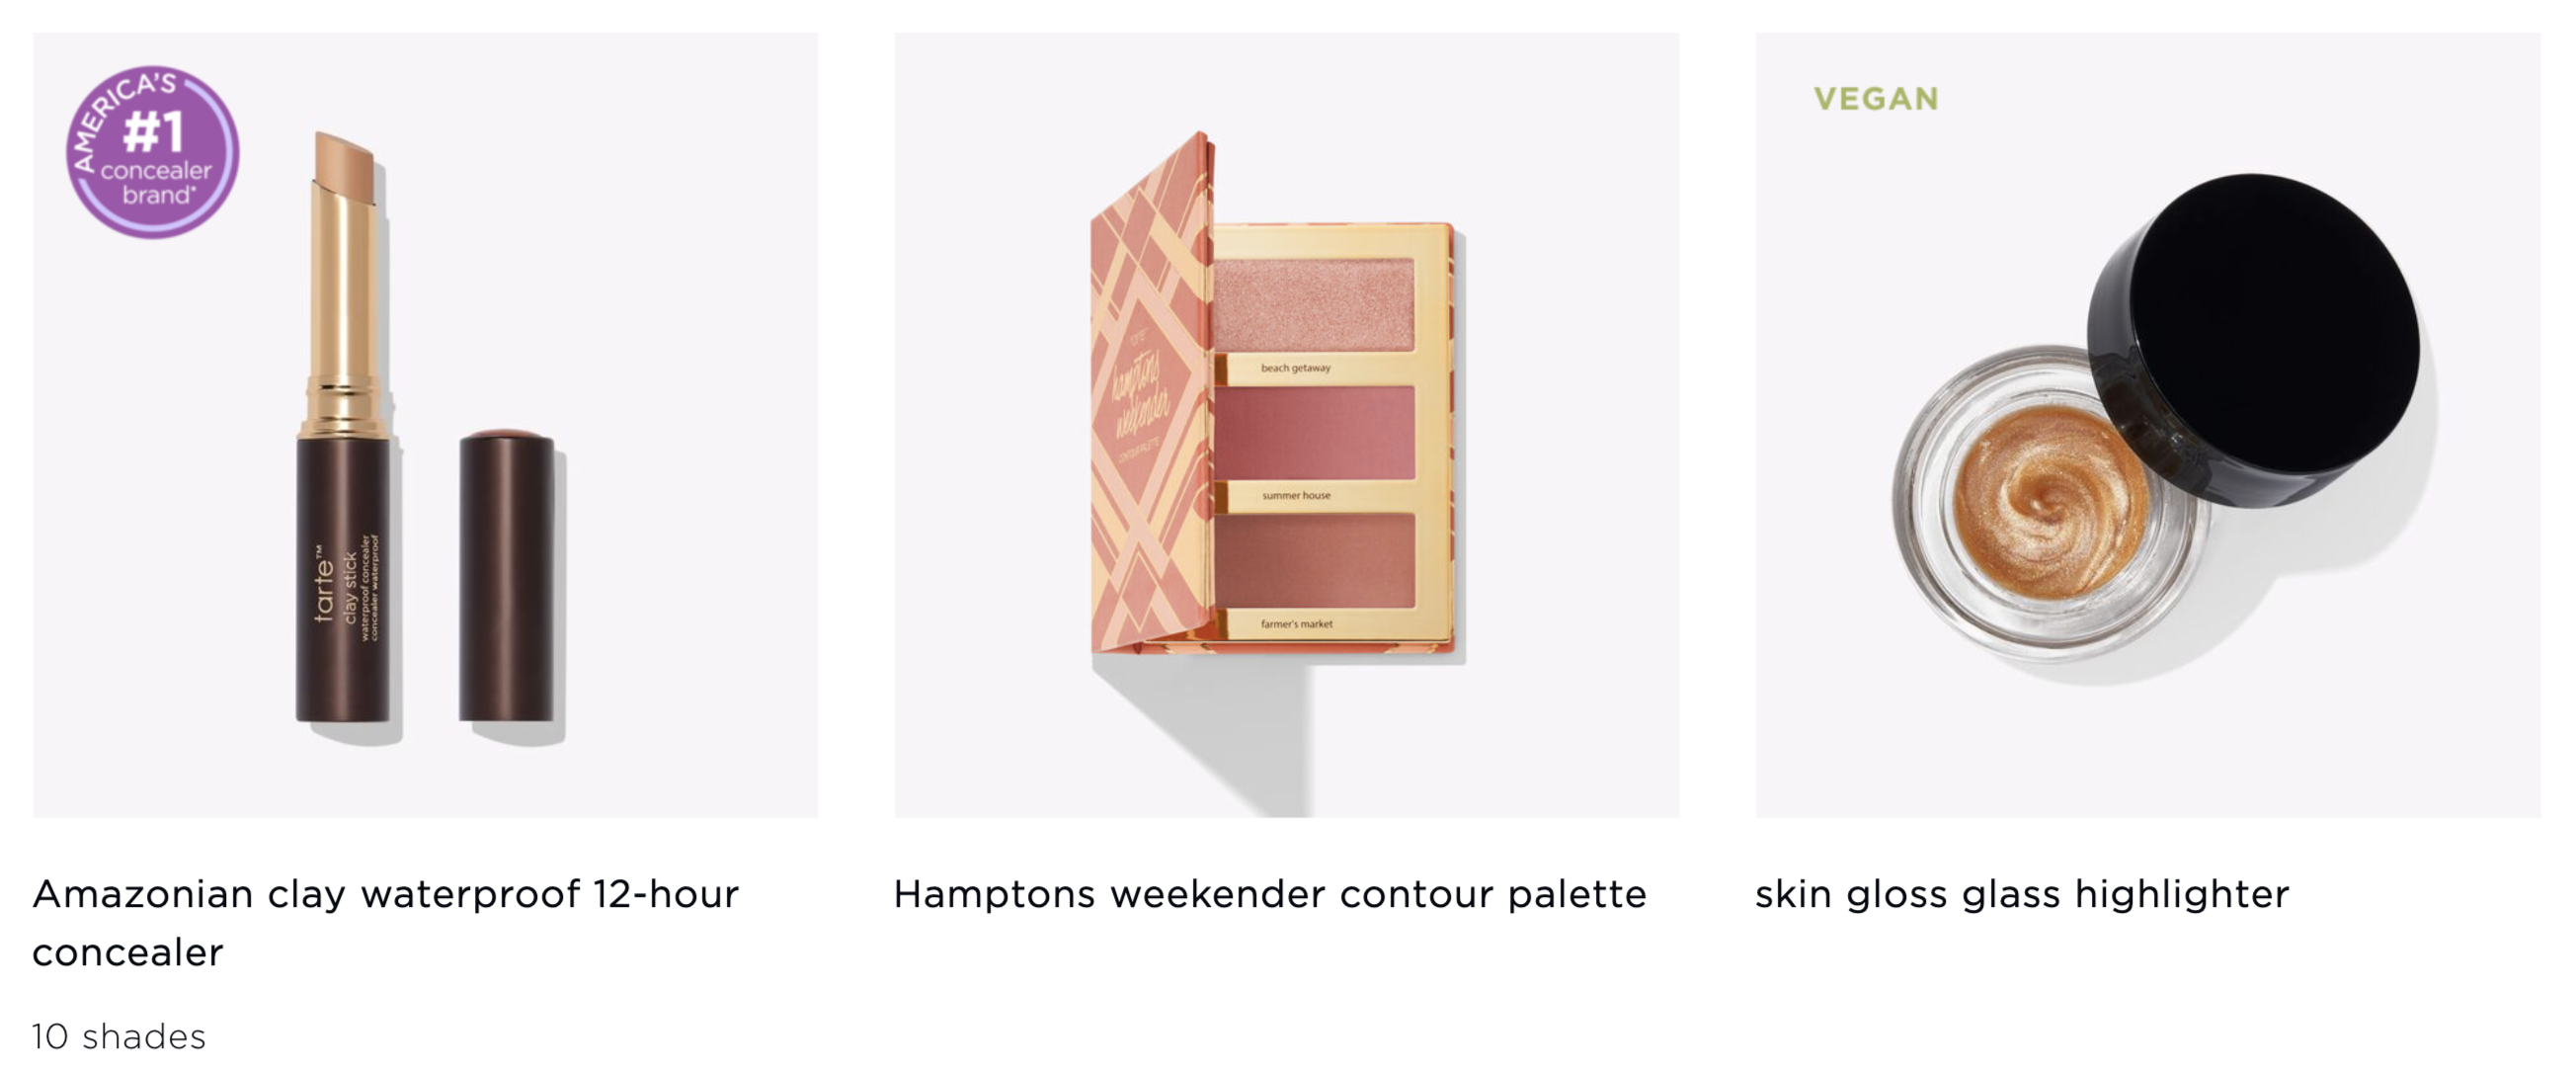 Screenshot of Tarte's build your own kit with a few blush, concealer, and highlighter options